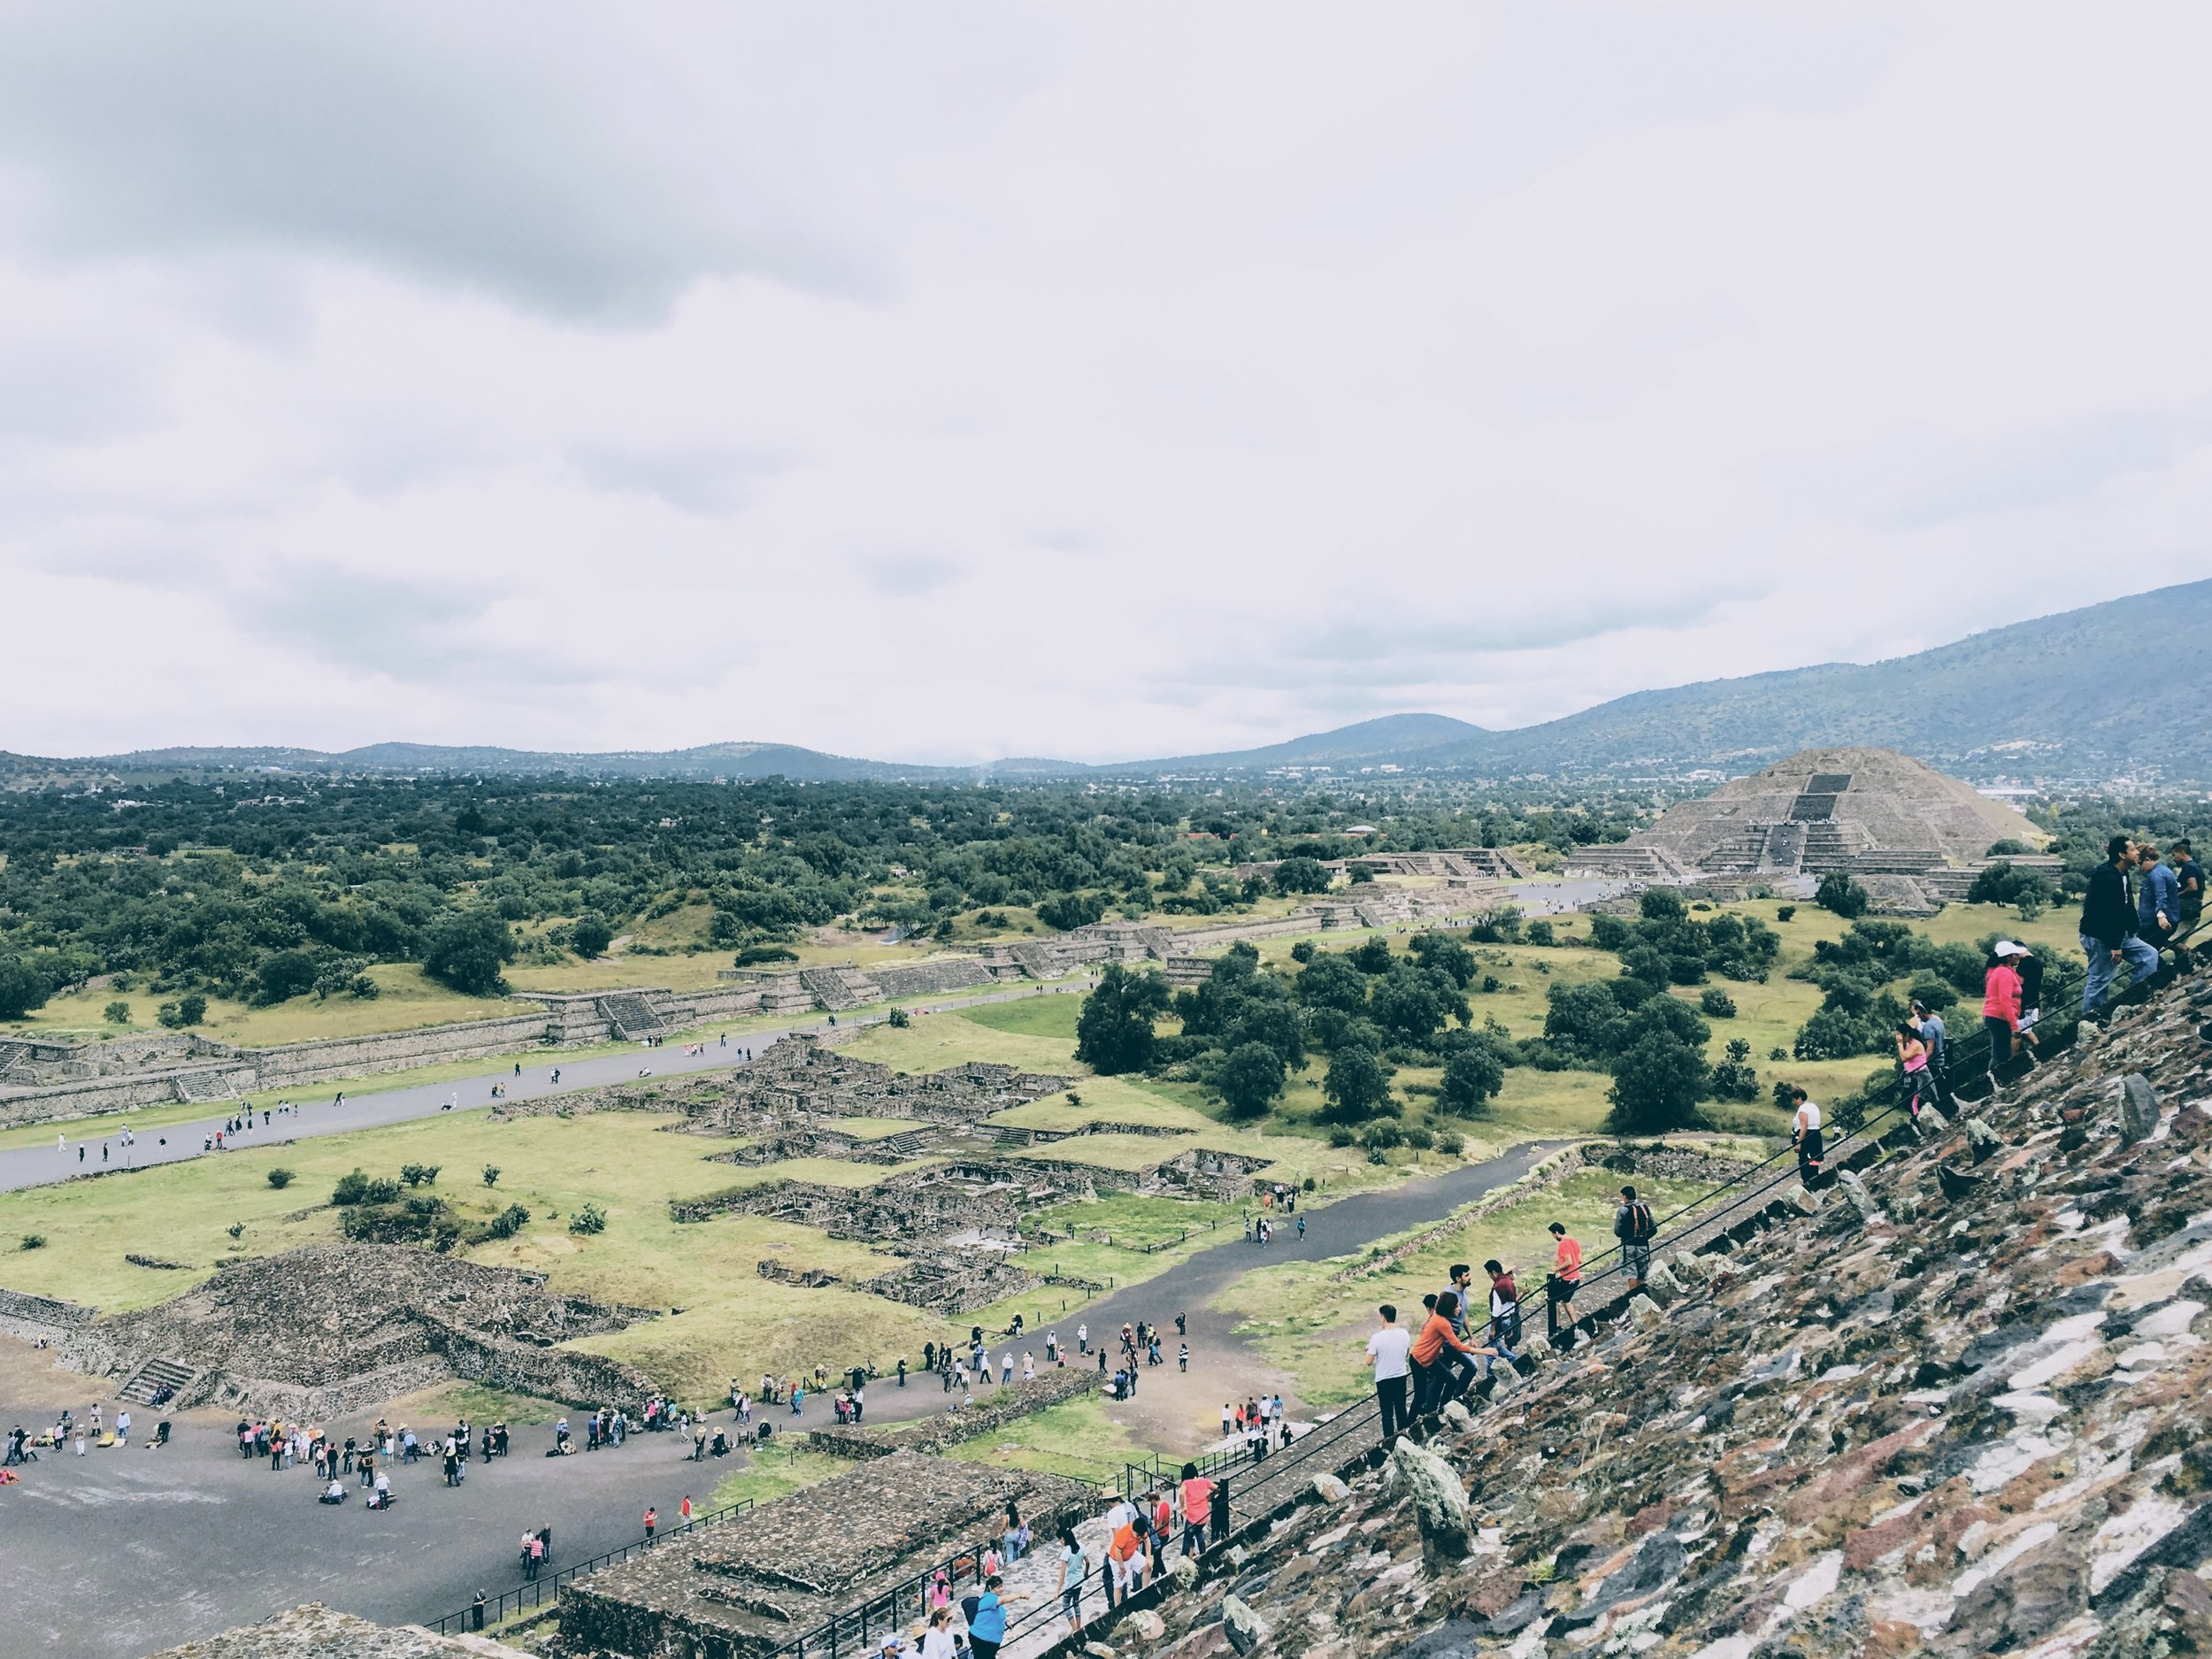 The Weekly Getaway: Mexico City, a City of Unexpected Wonders